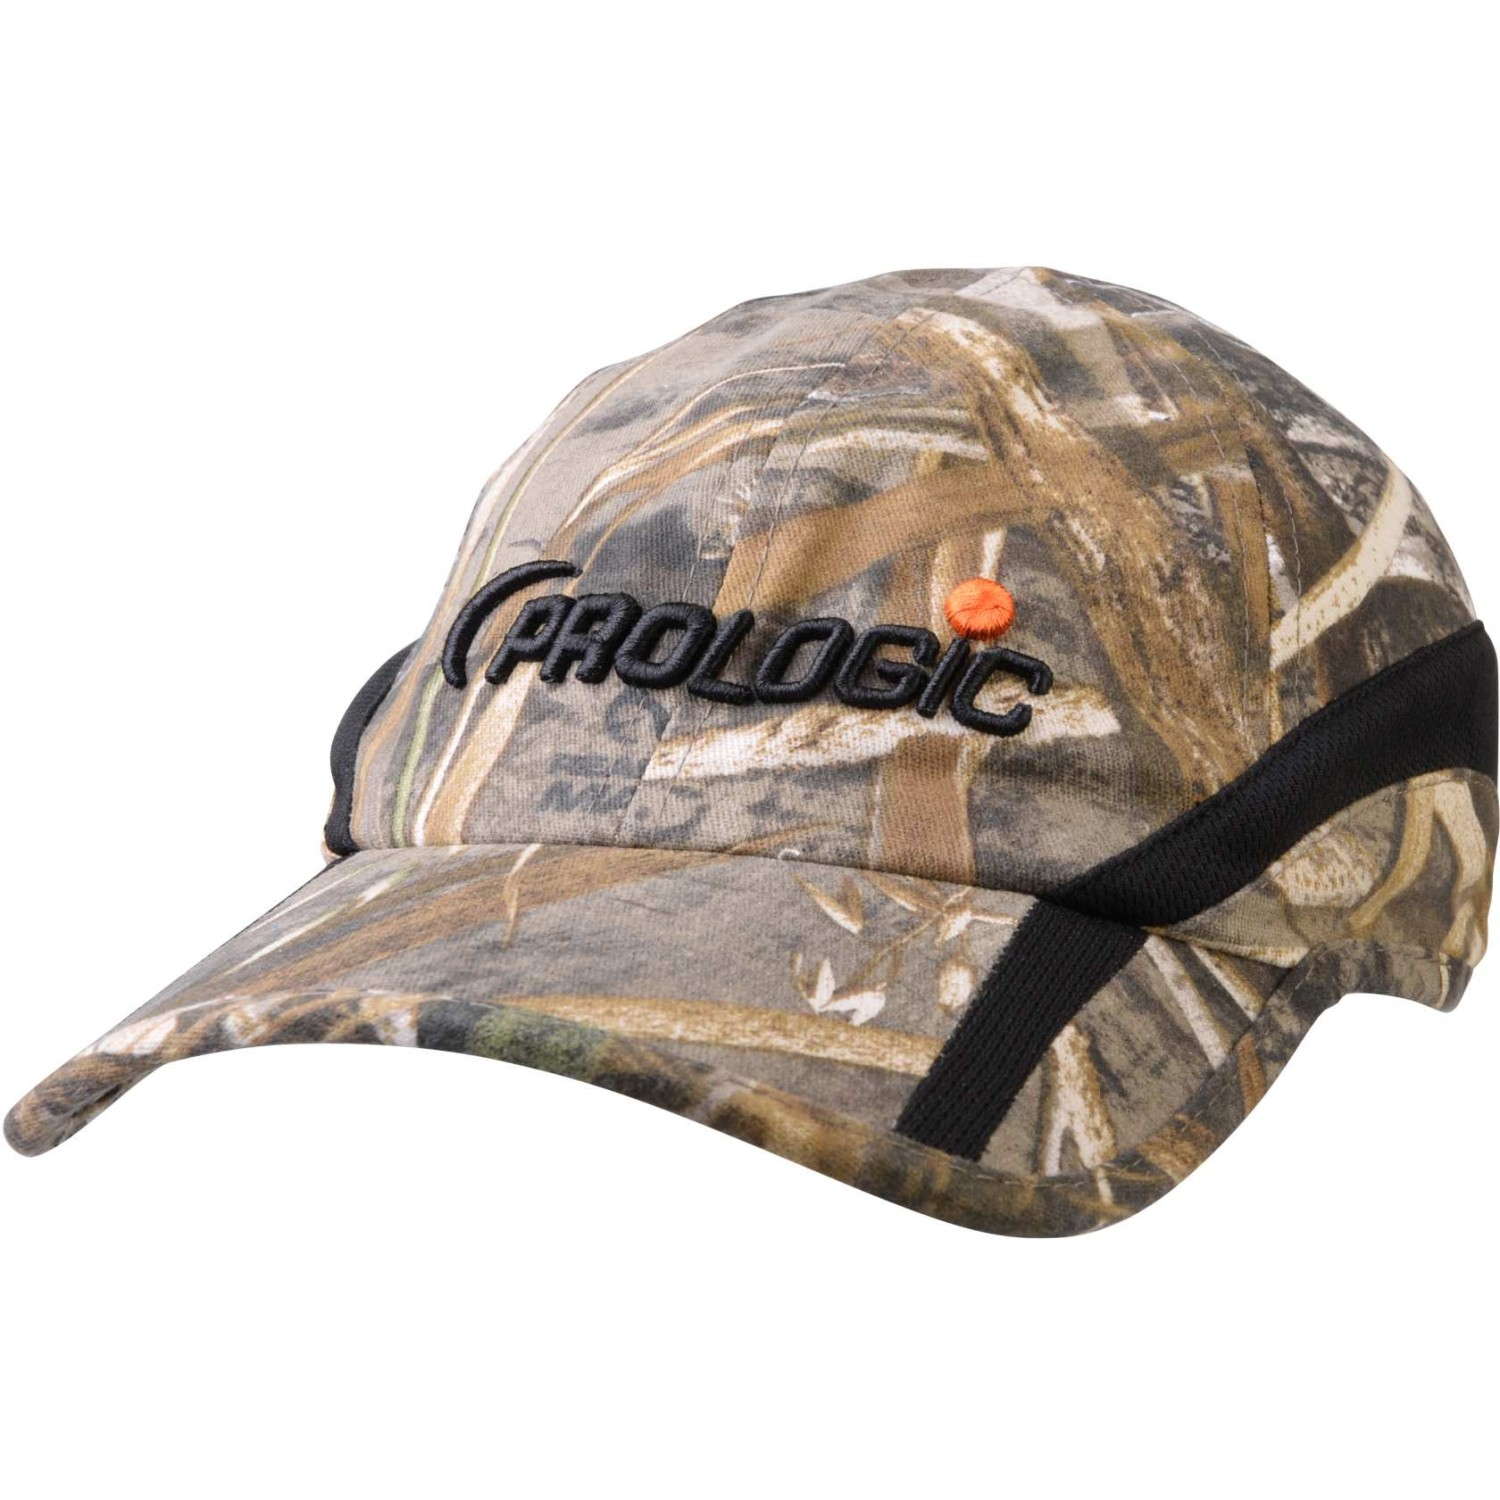 Prologic Survivor Cap Max5 One Size